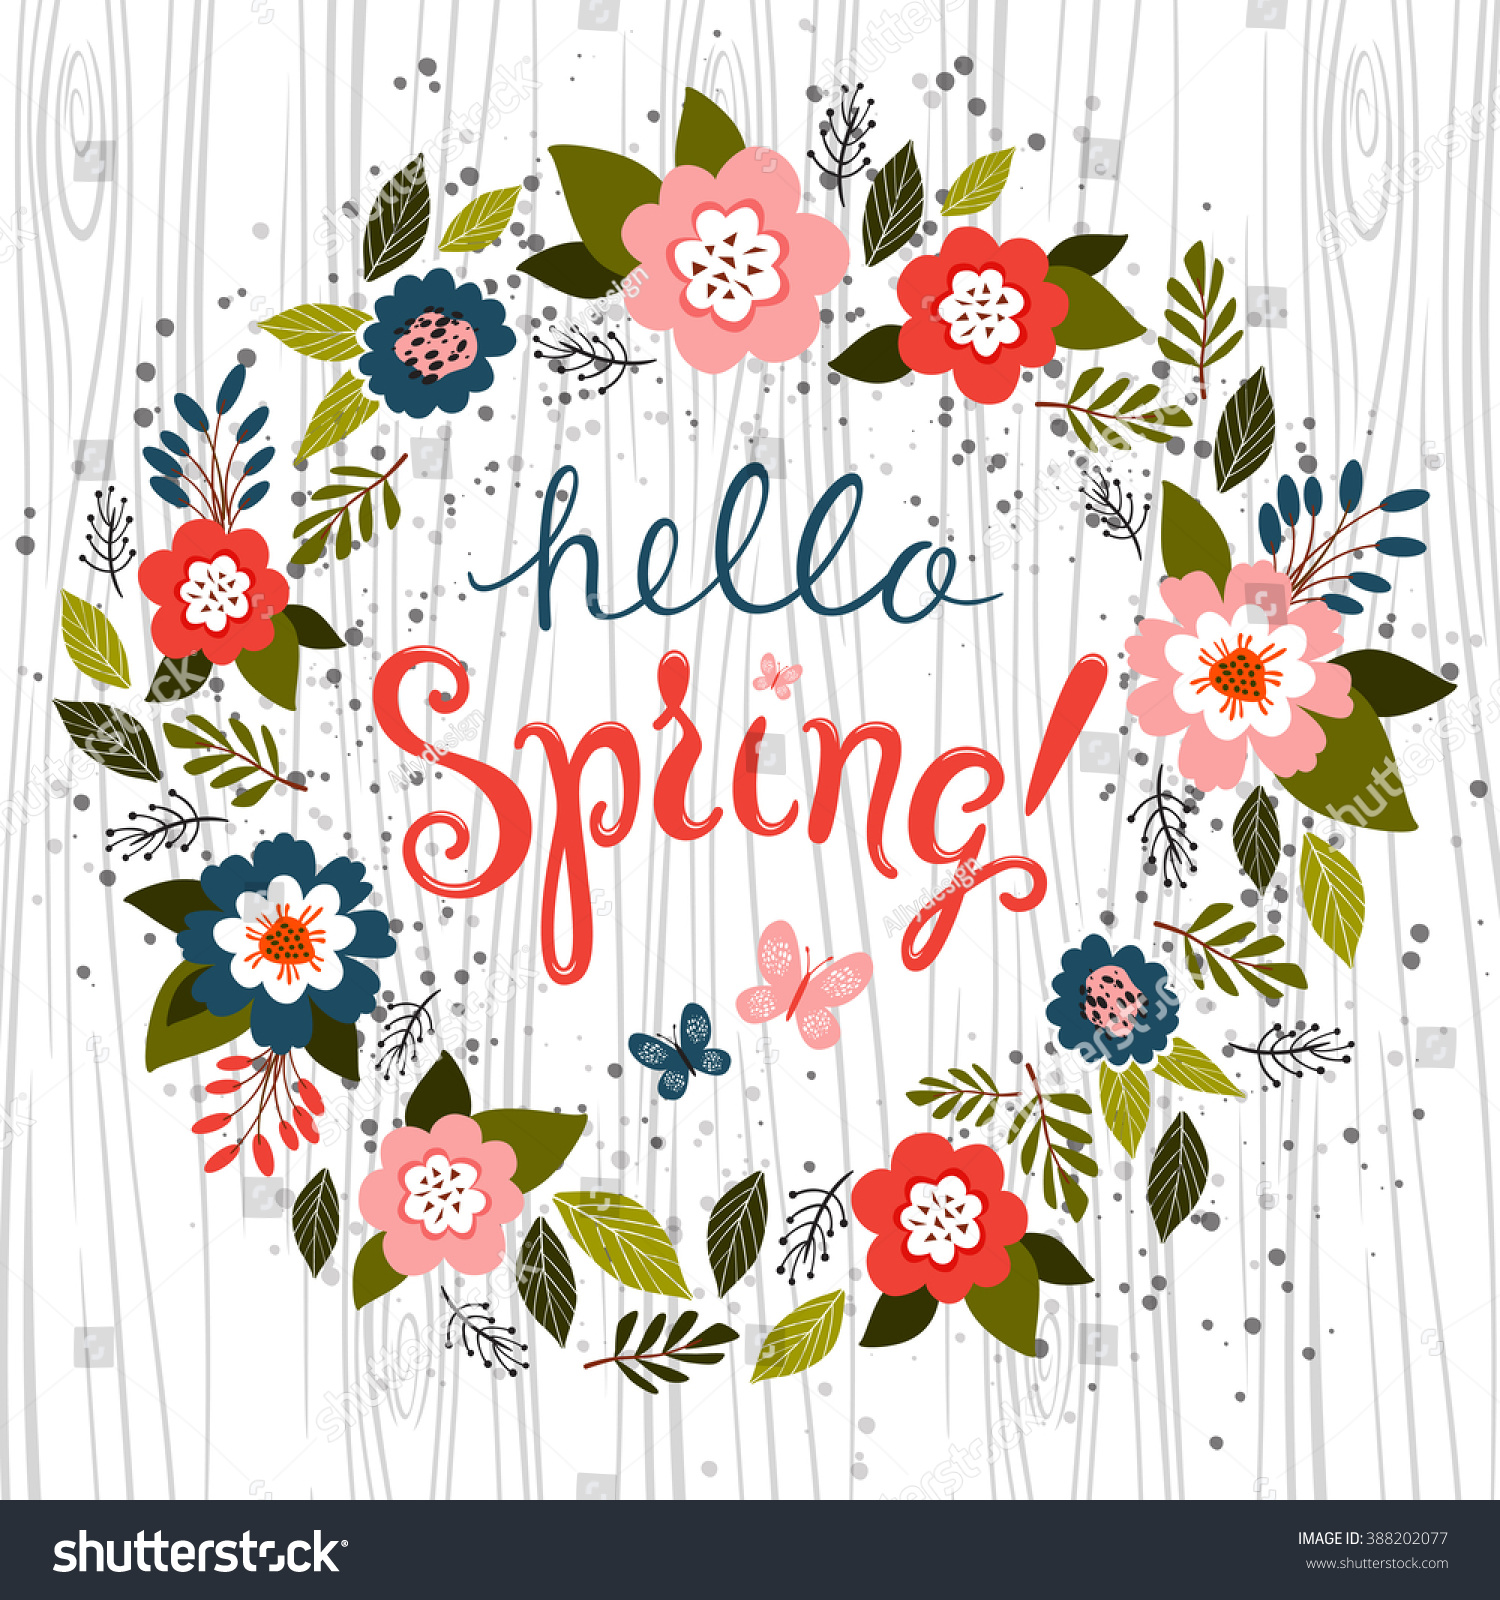 Hello spring greeting card Hand drawn illustration with wood background effect Flower wreath and lettering